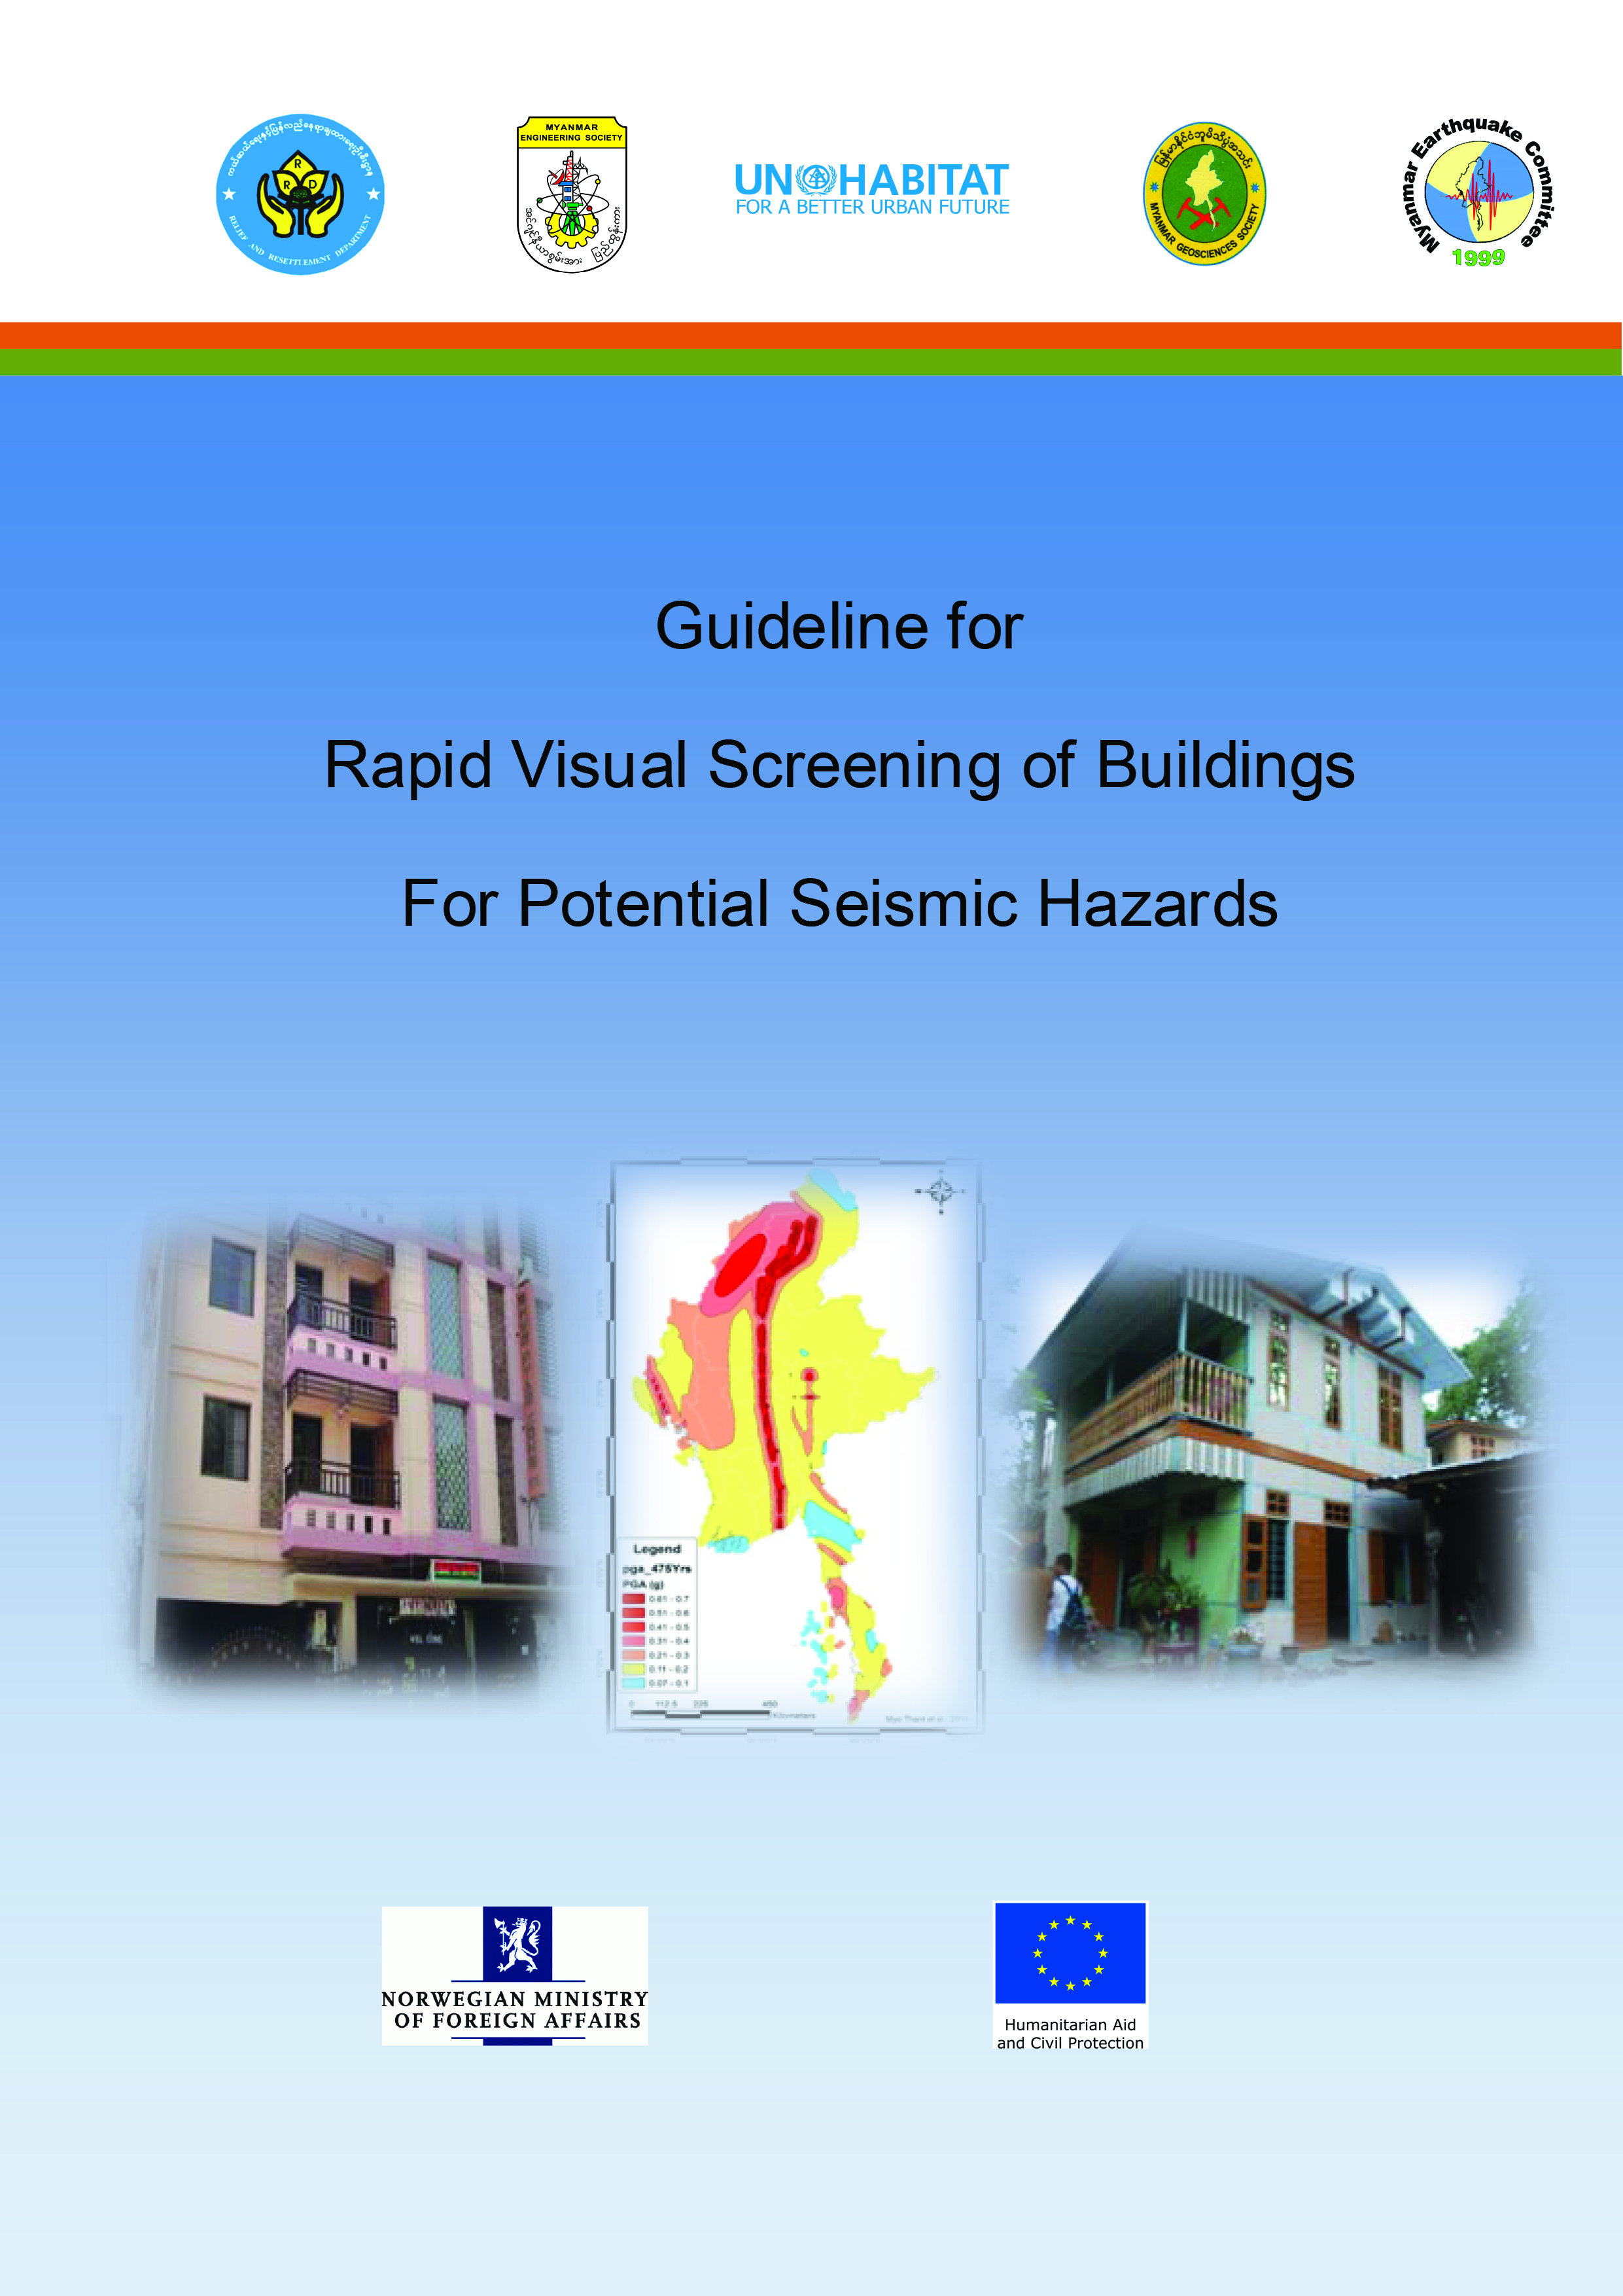 Guideline for Rapid Visual Screening of Buildings for Potential Seismic Hazards